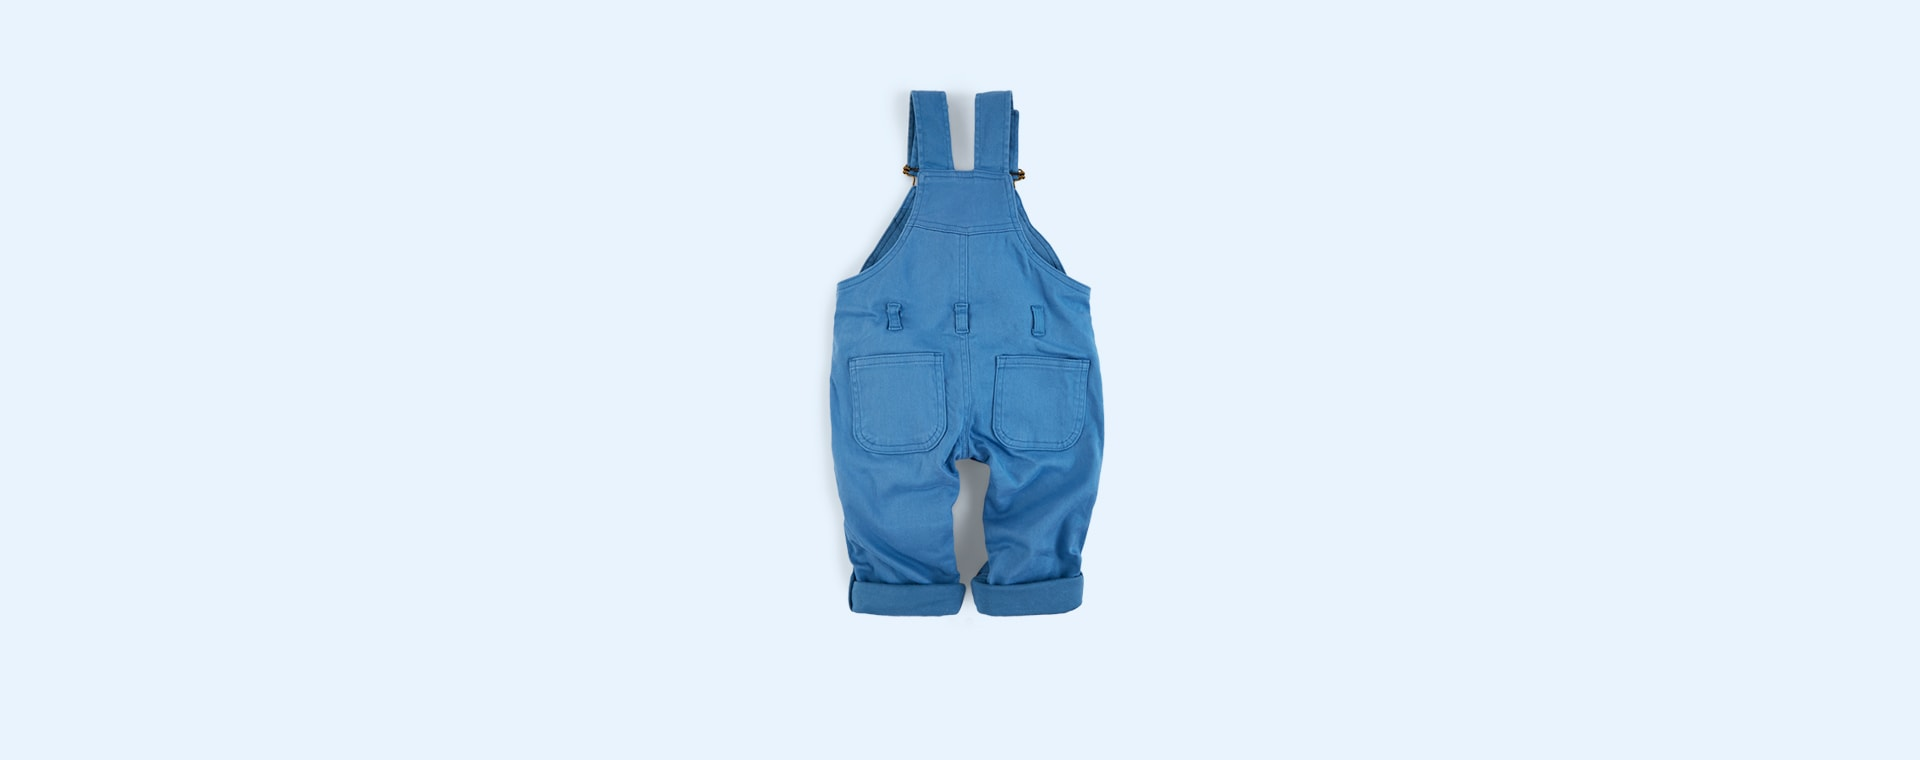 Cornflower Blue Dotty Dungarees Dungarees